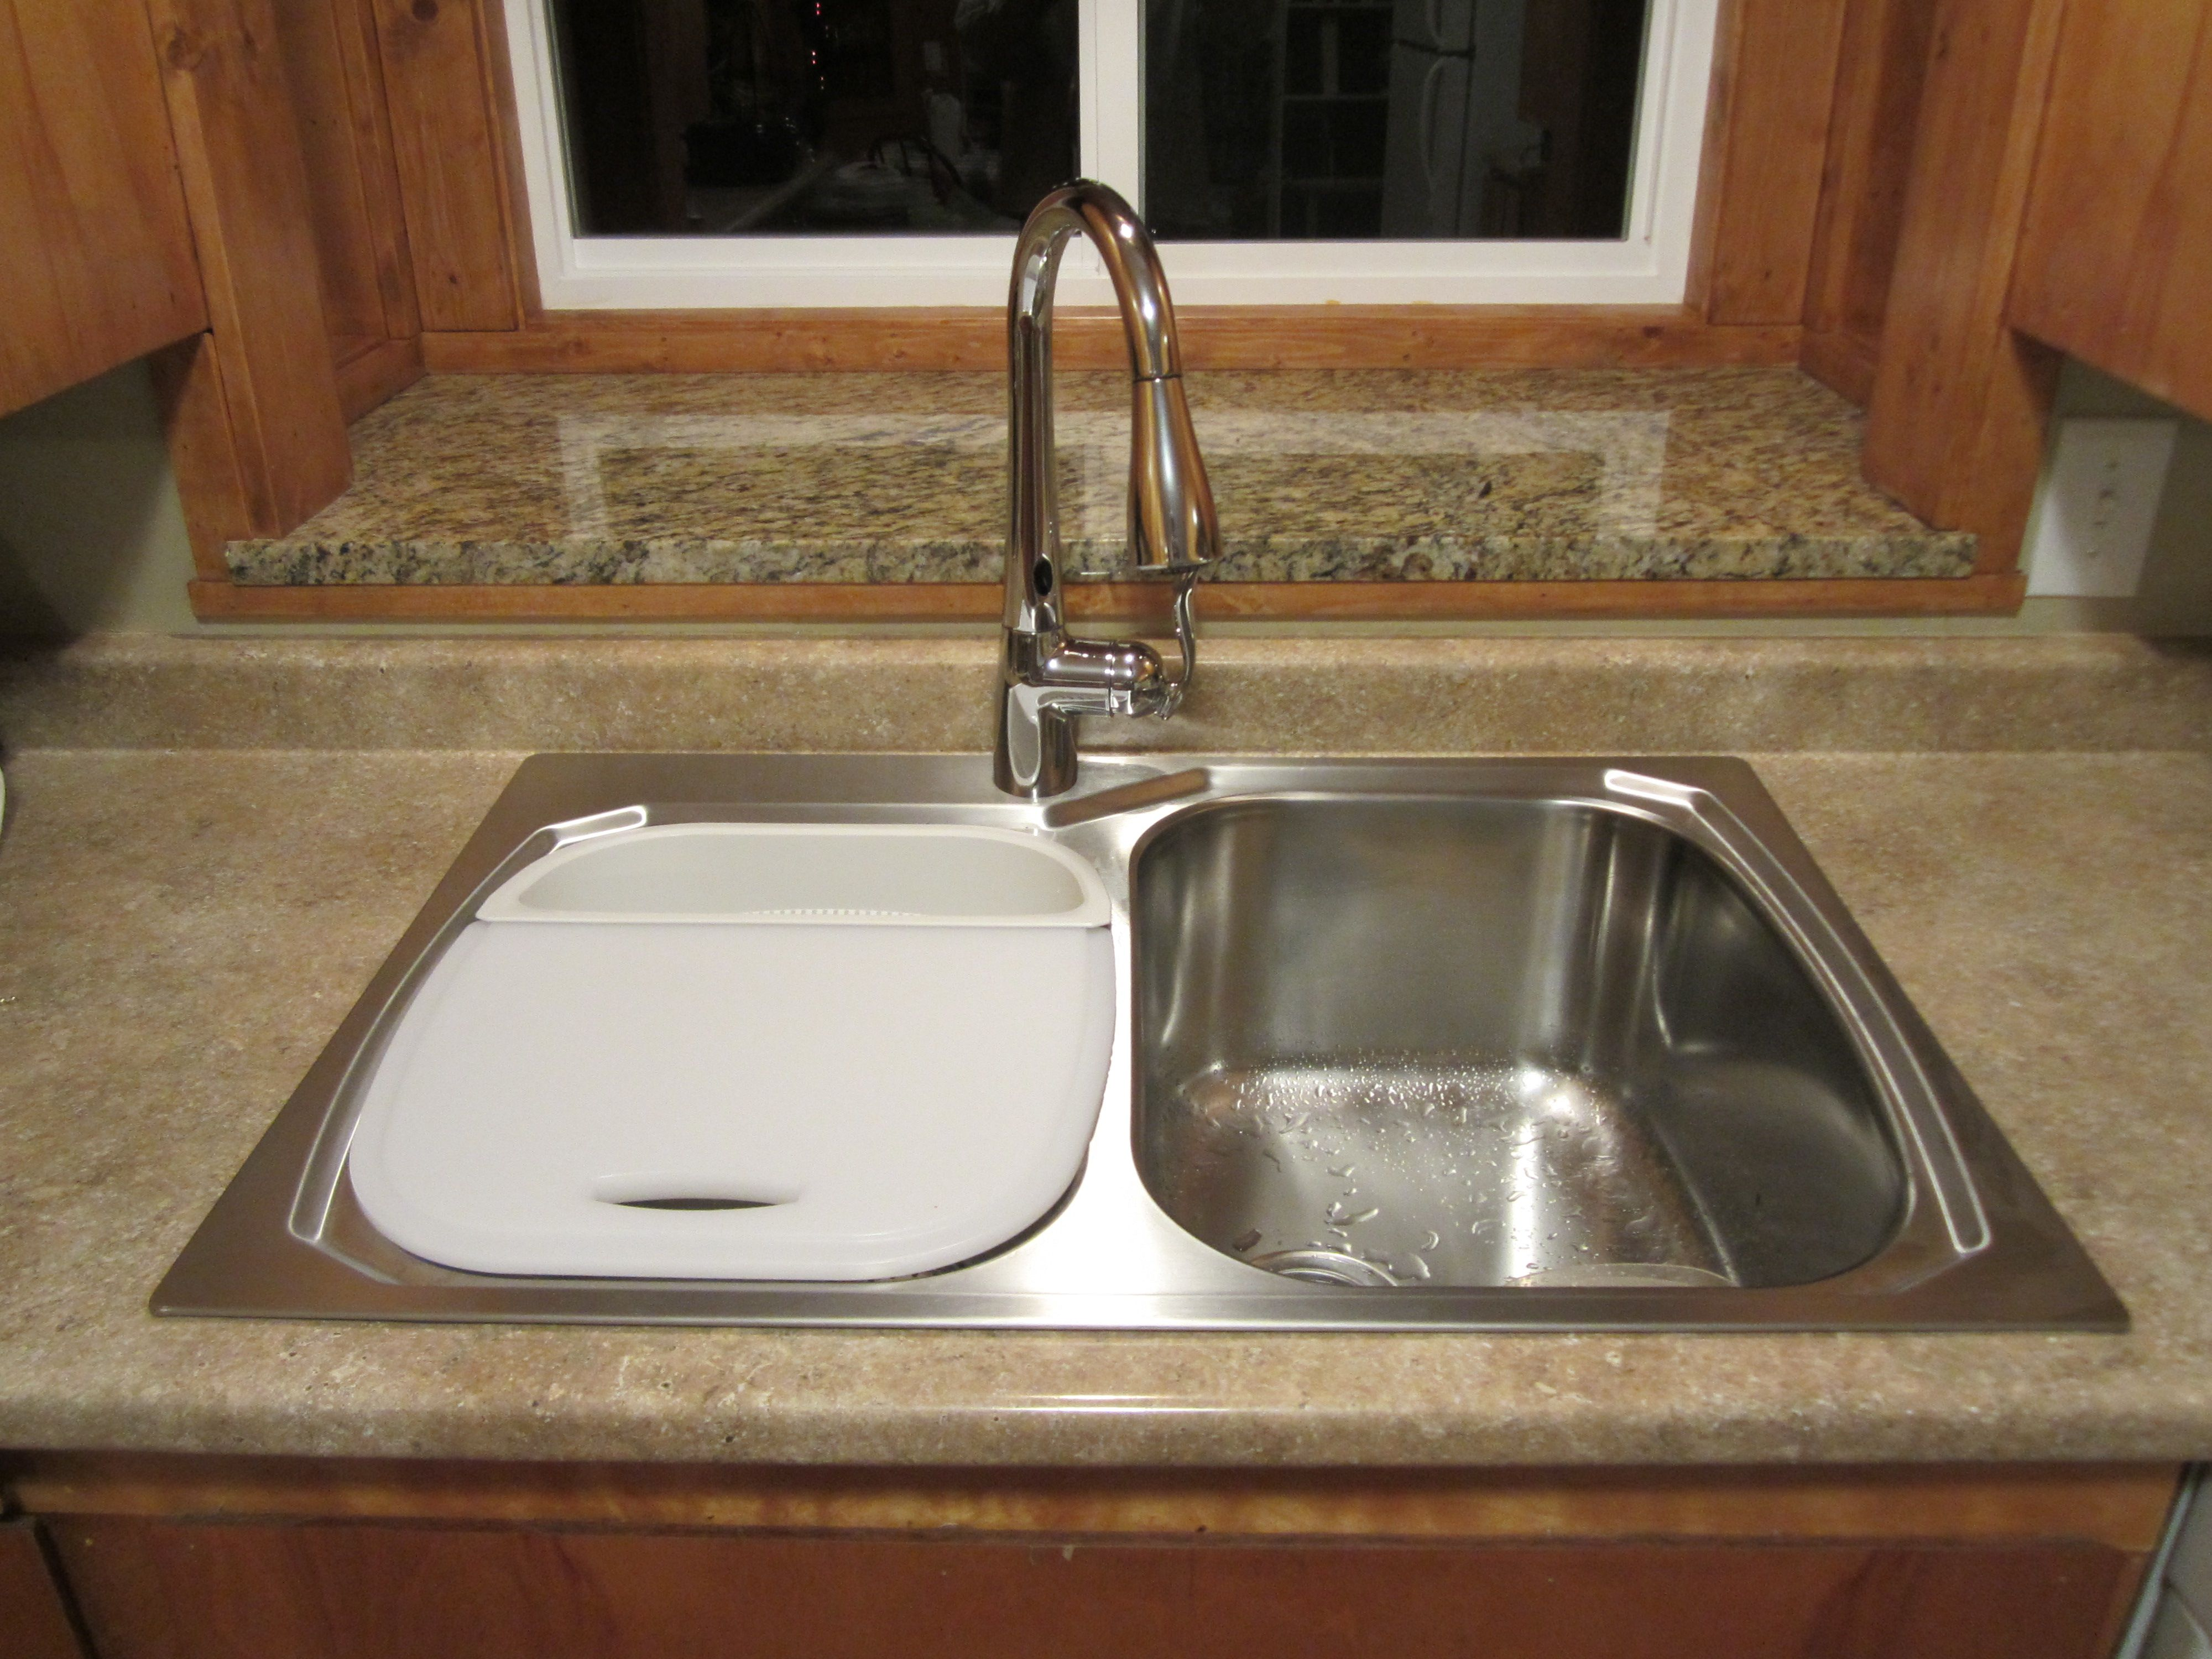 Stainless steel sink and Moen motion sensor faucet in chrome finish ...